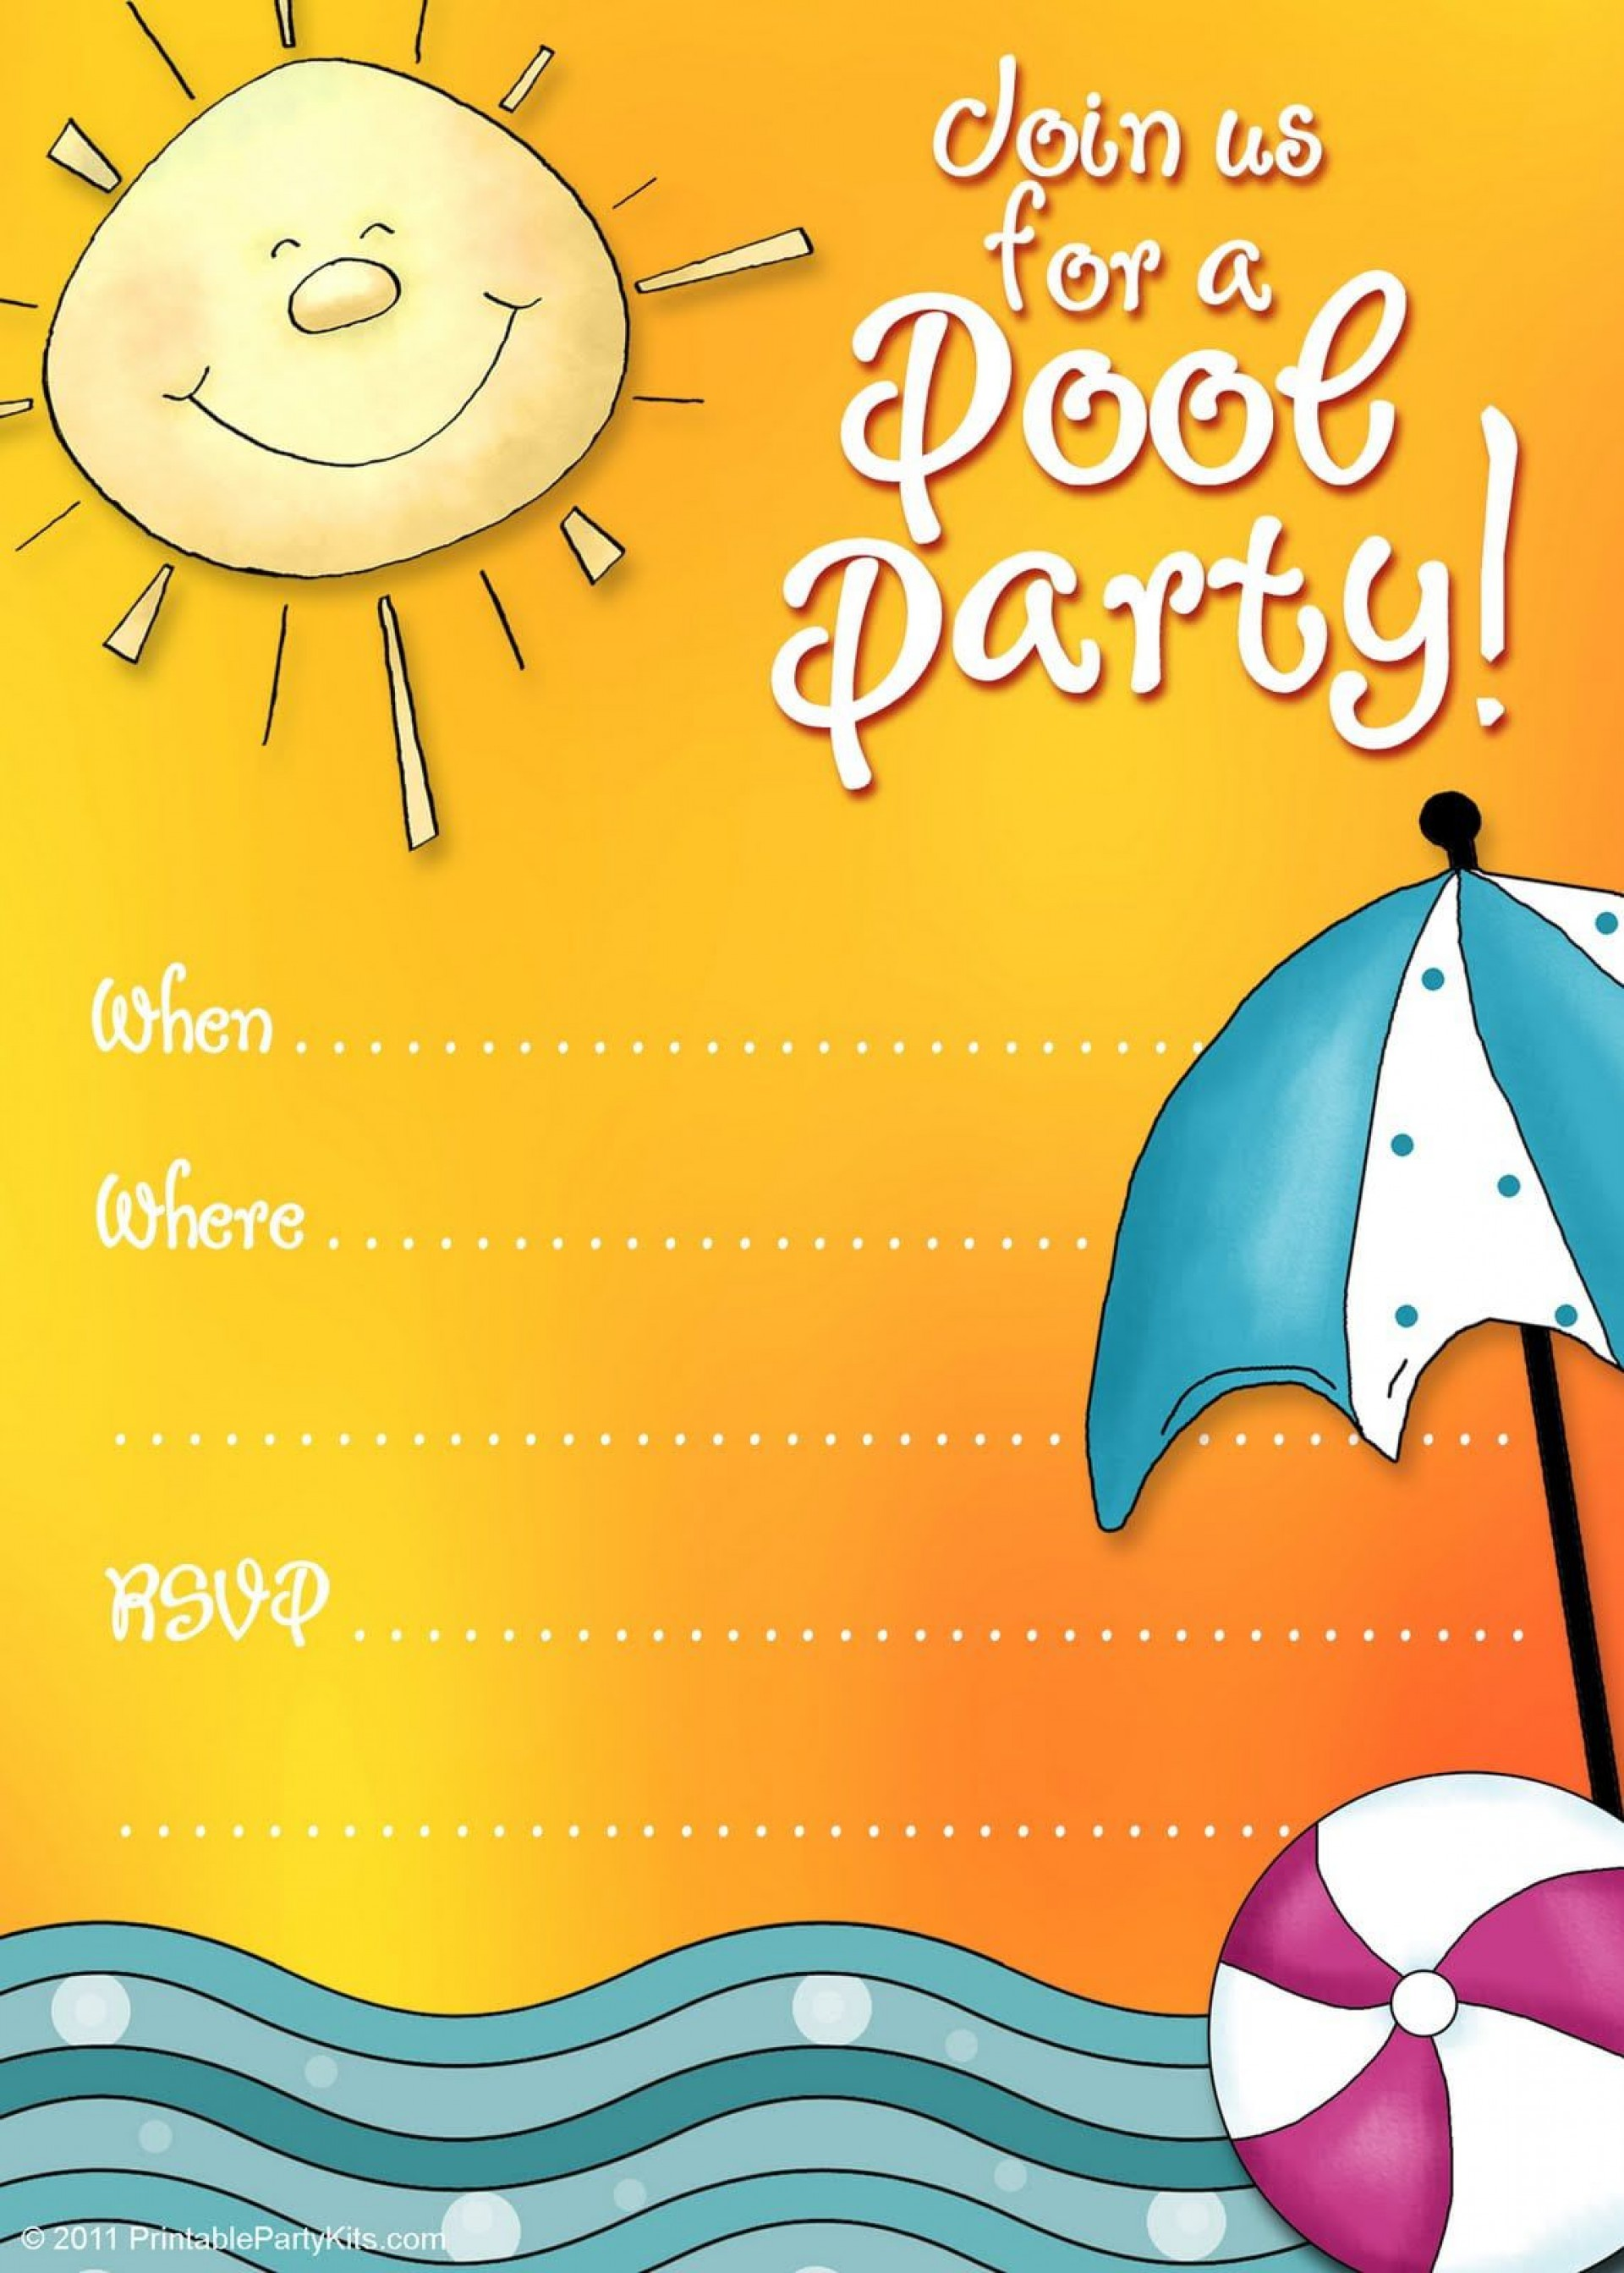 004 Unforgettable Free Pool Party Invitation Template Printable High Resolution  Card Summer1920